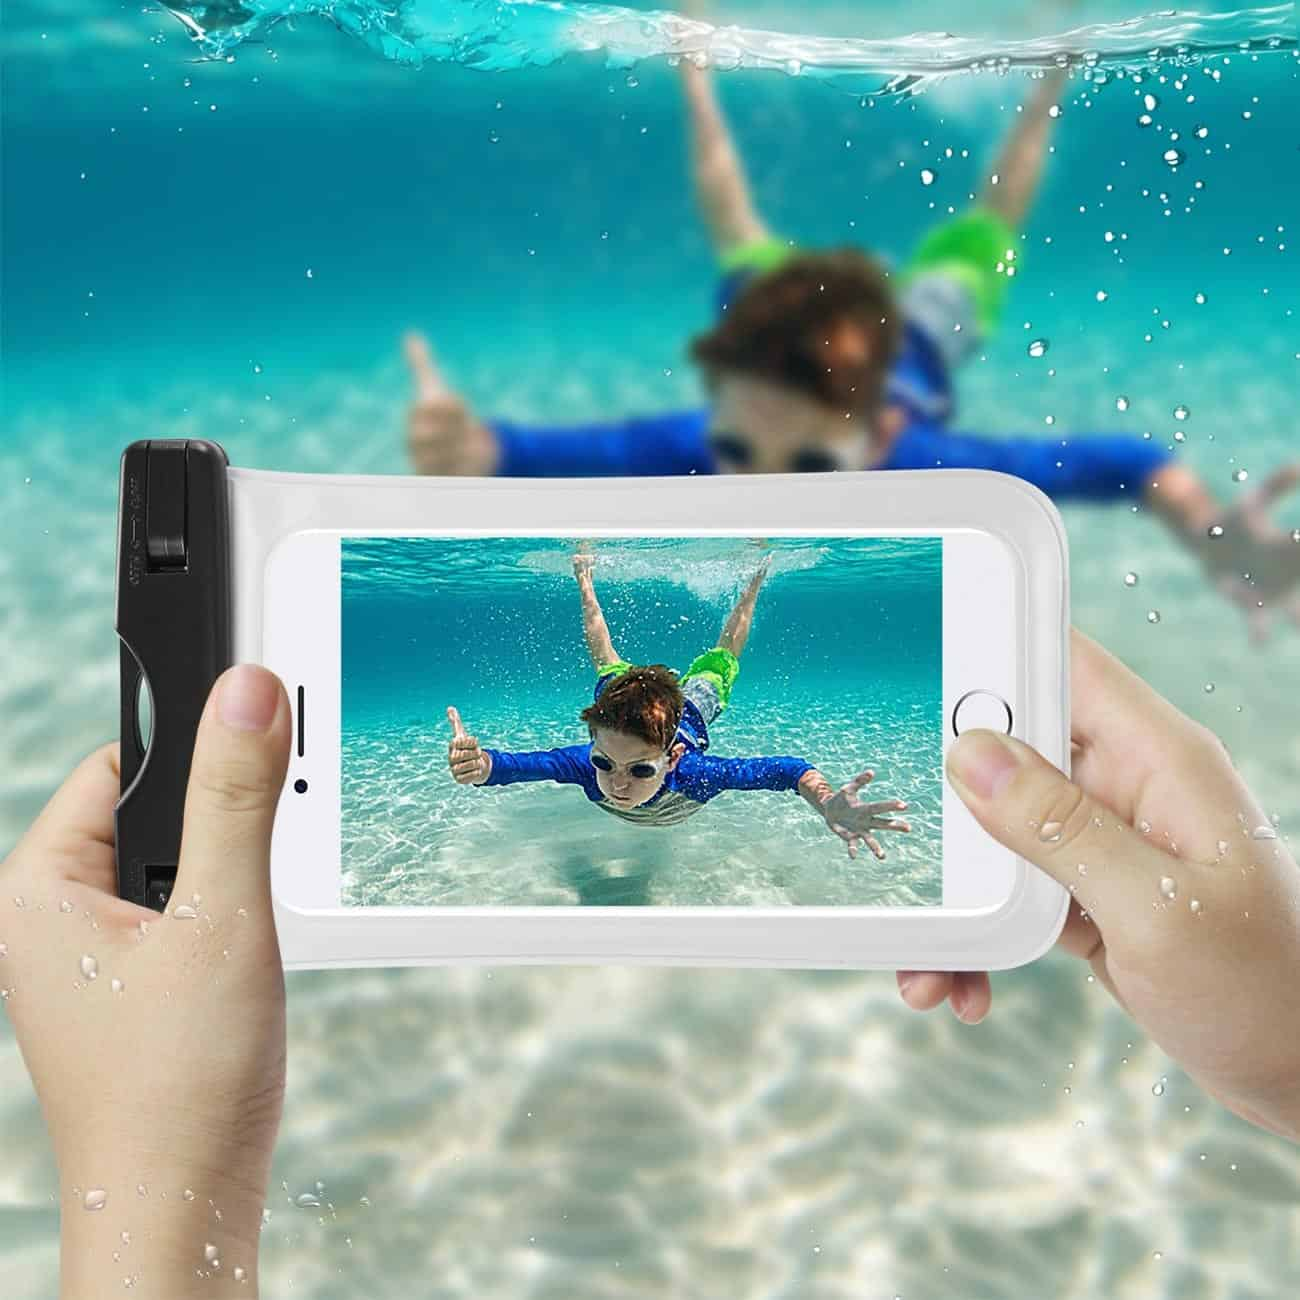 WATERPROOF CASE FOR IPHONE 6 PLUS/ 6S PLUS/ 7 PLUS OR 5.5 INCH DEVICES WITH WRIST STRAP IN WHITE